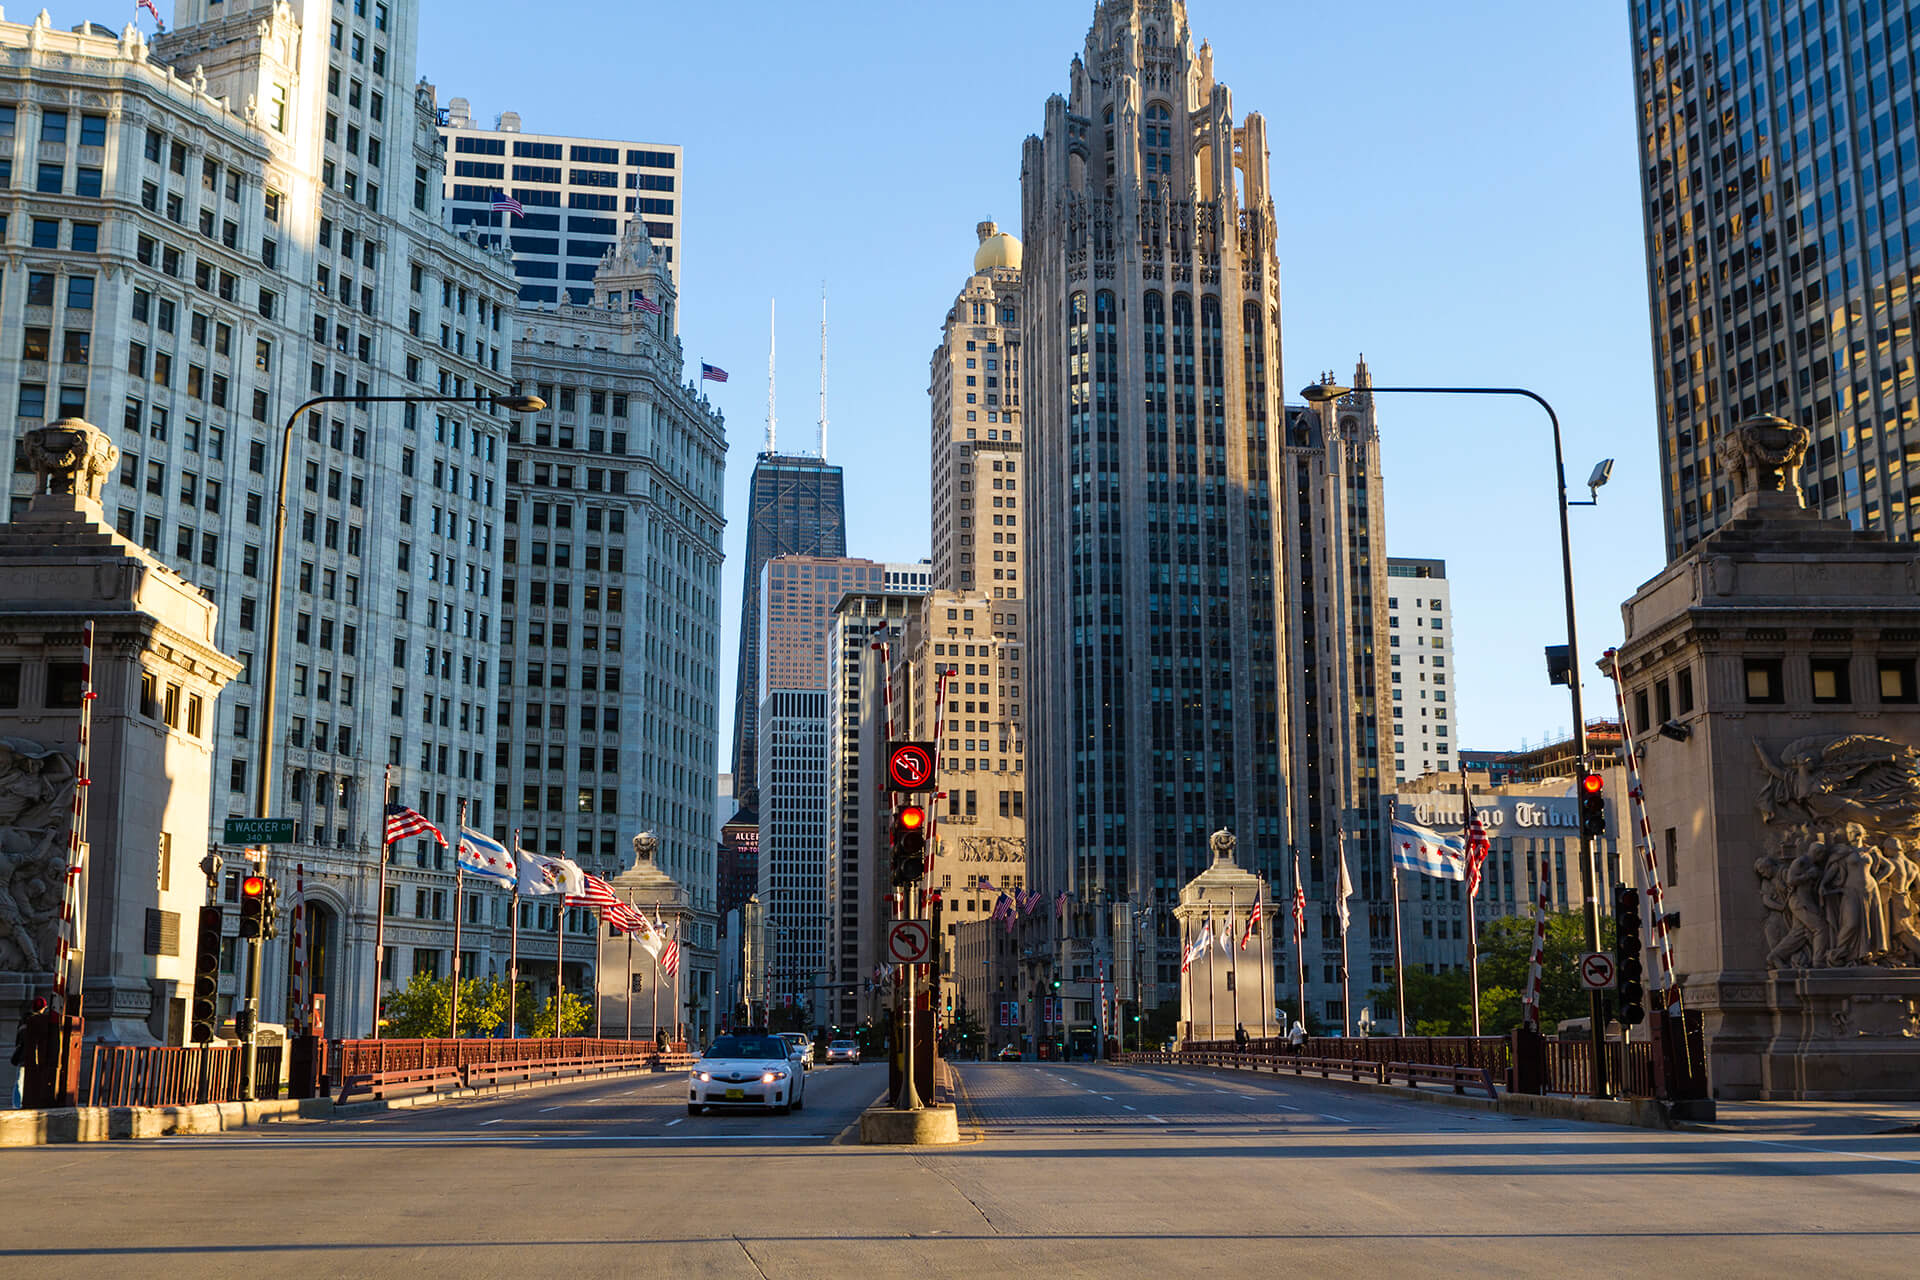 North Michigan Avenue in Chicago, Illinois, United States